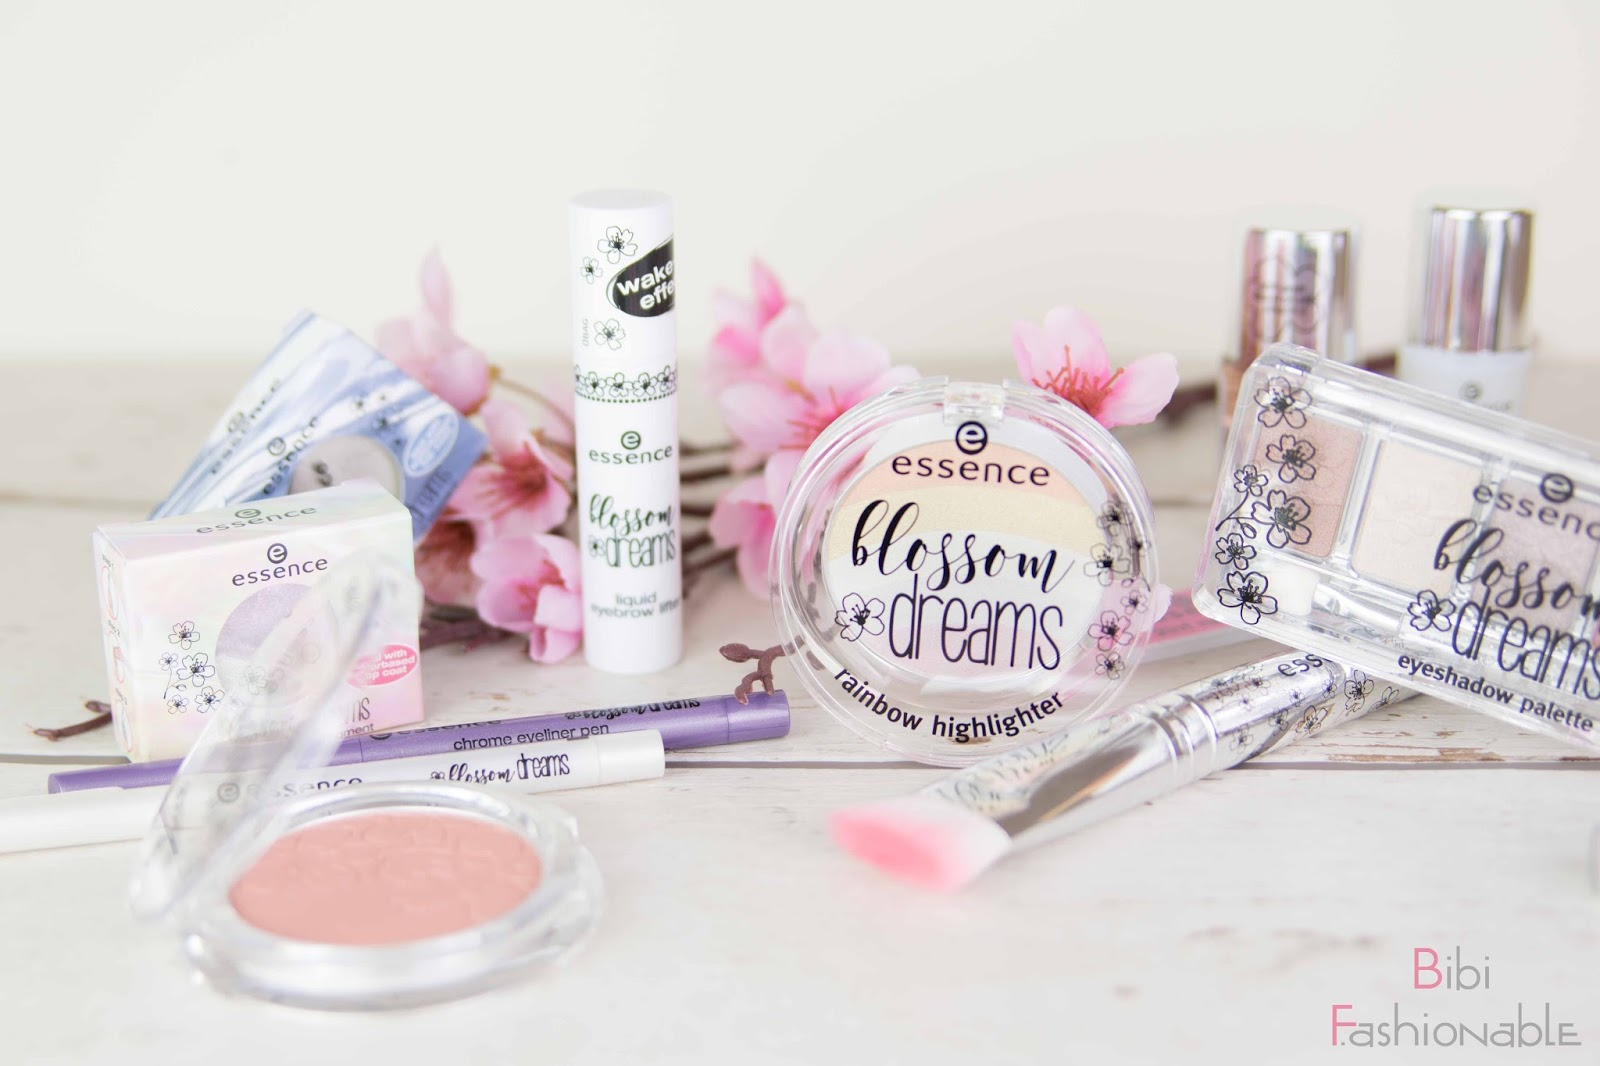 essence blossom dreams Produkte nah